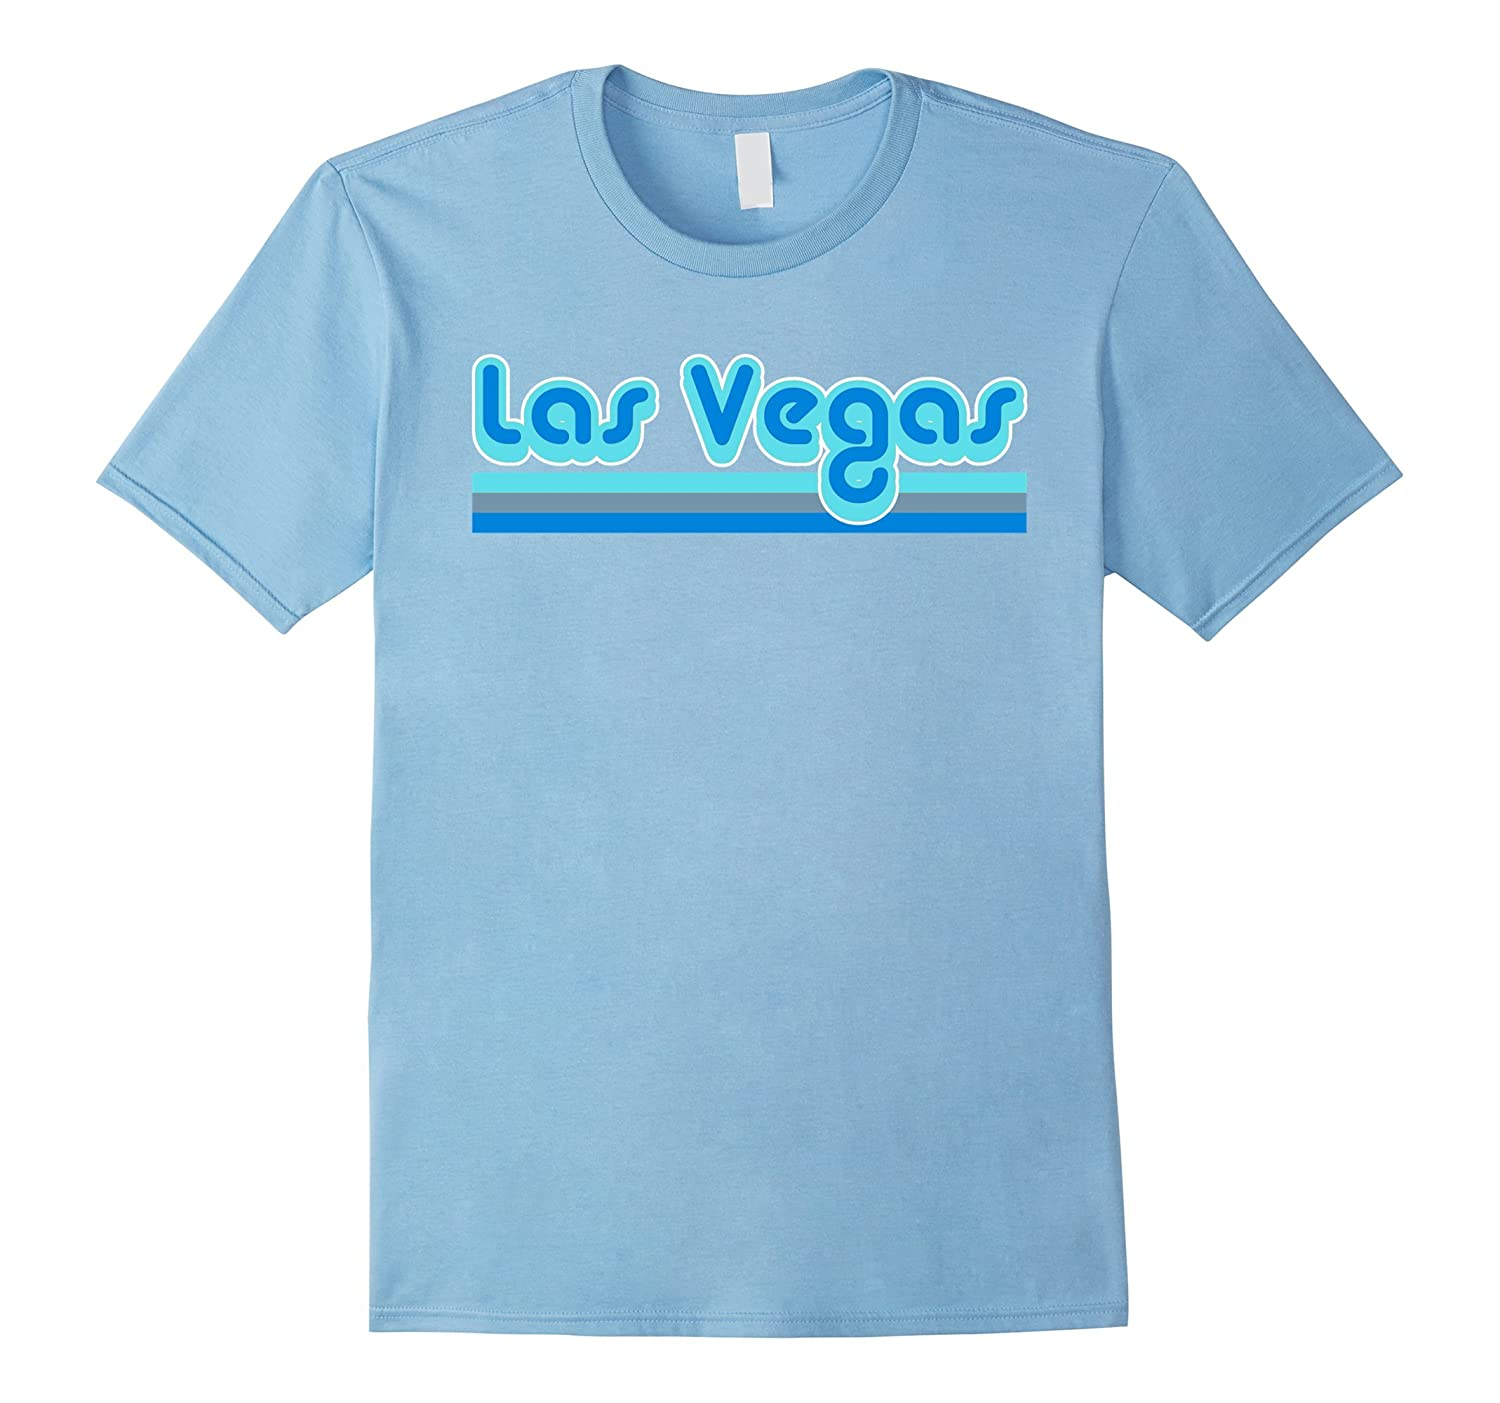 Cl Las Vegas >> Las Vegas Shirt 70s T Shirt For People Who Love Las Vegas Cl